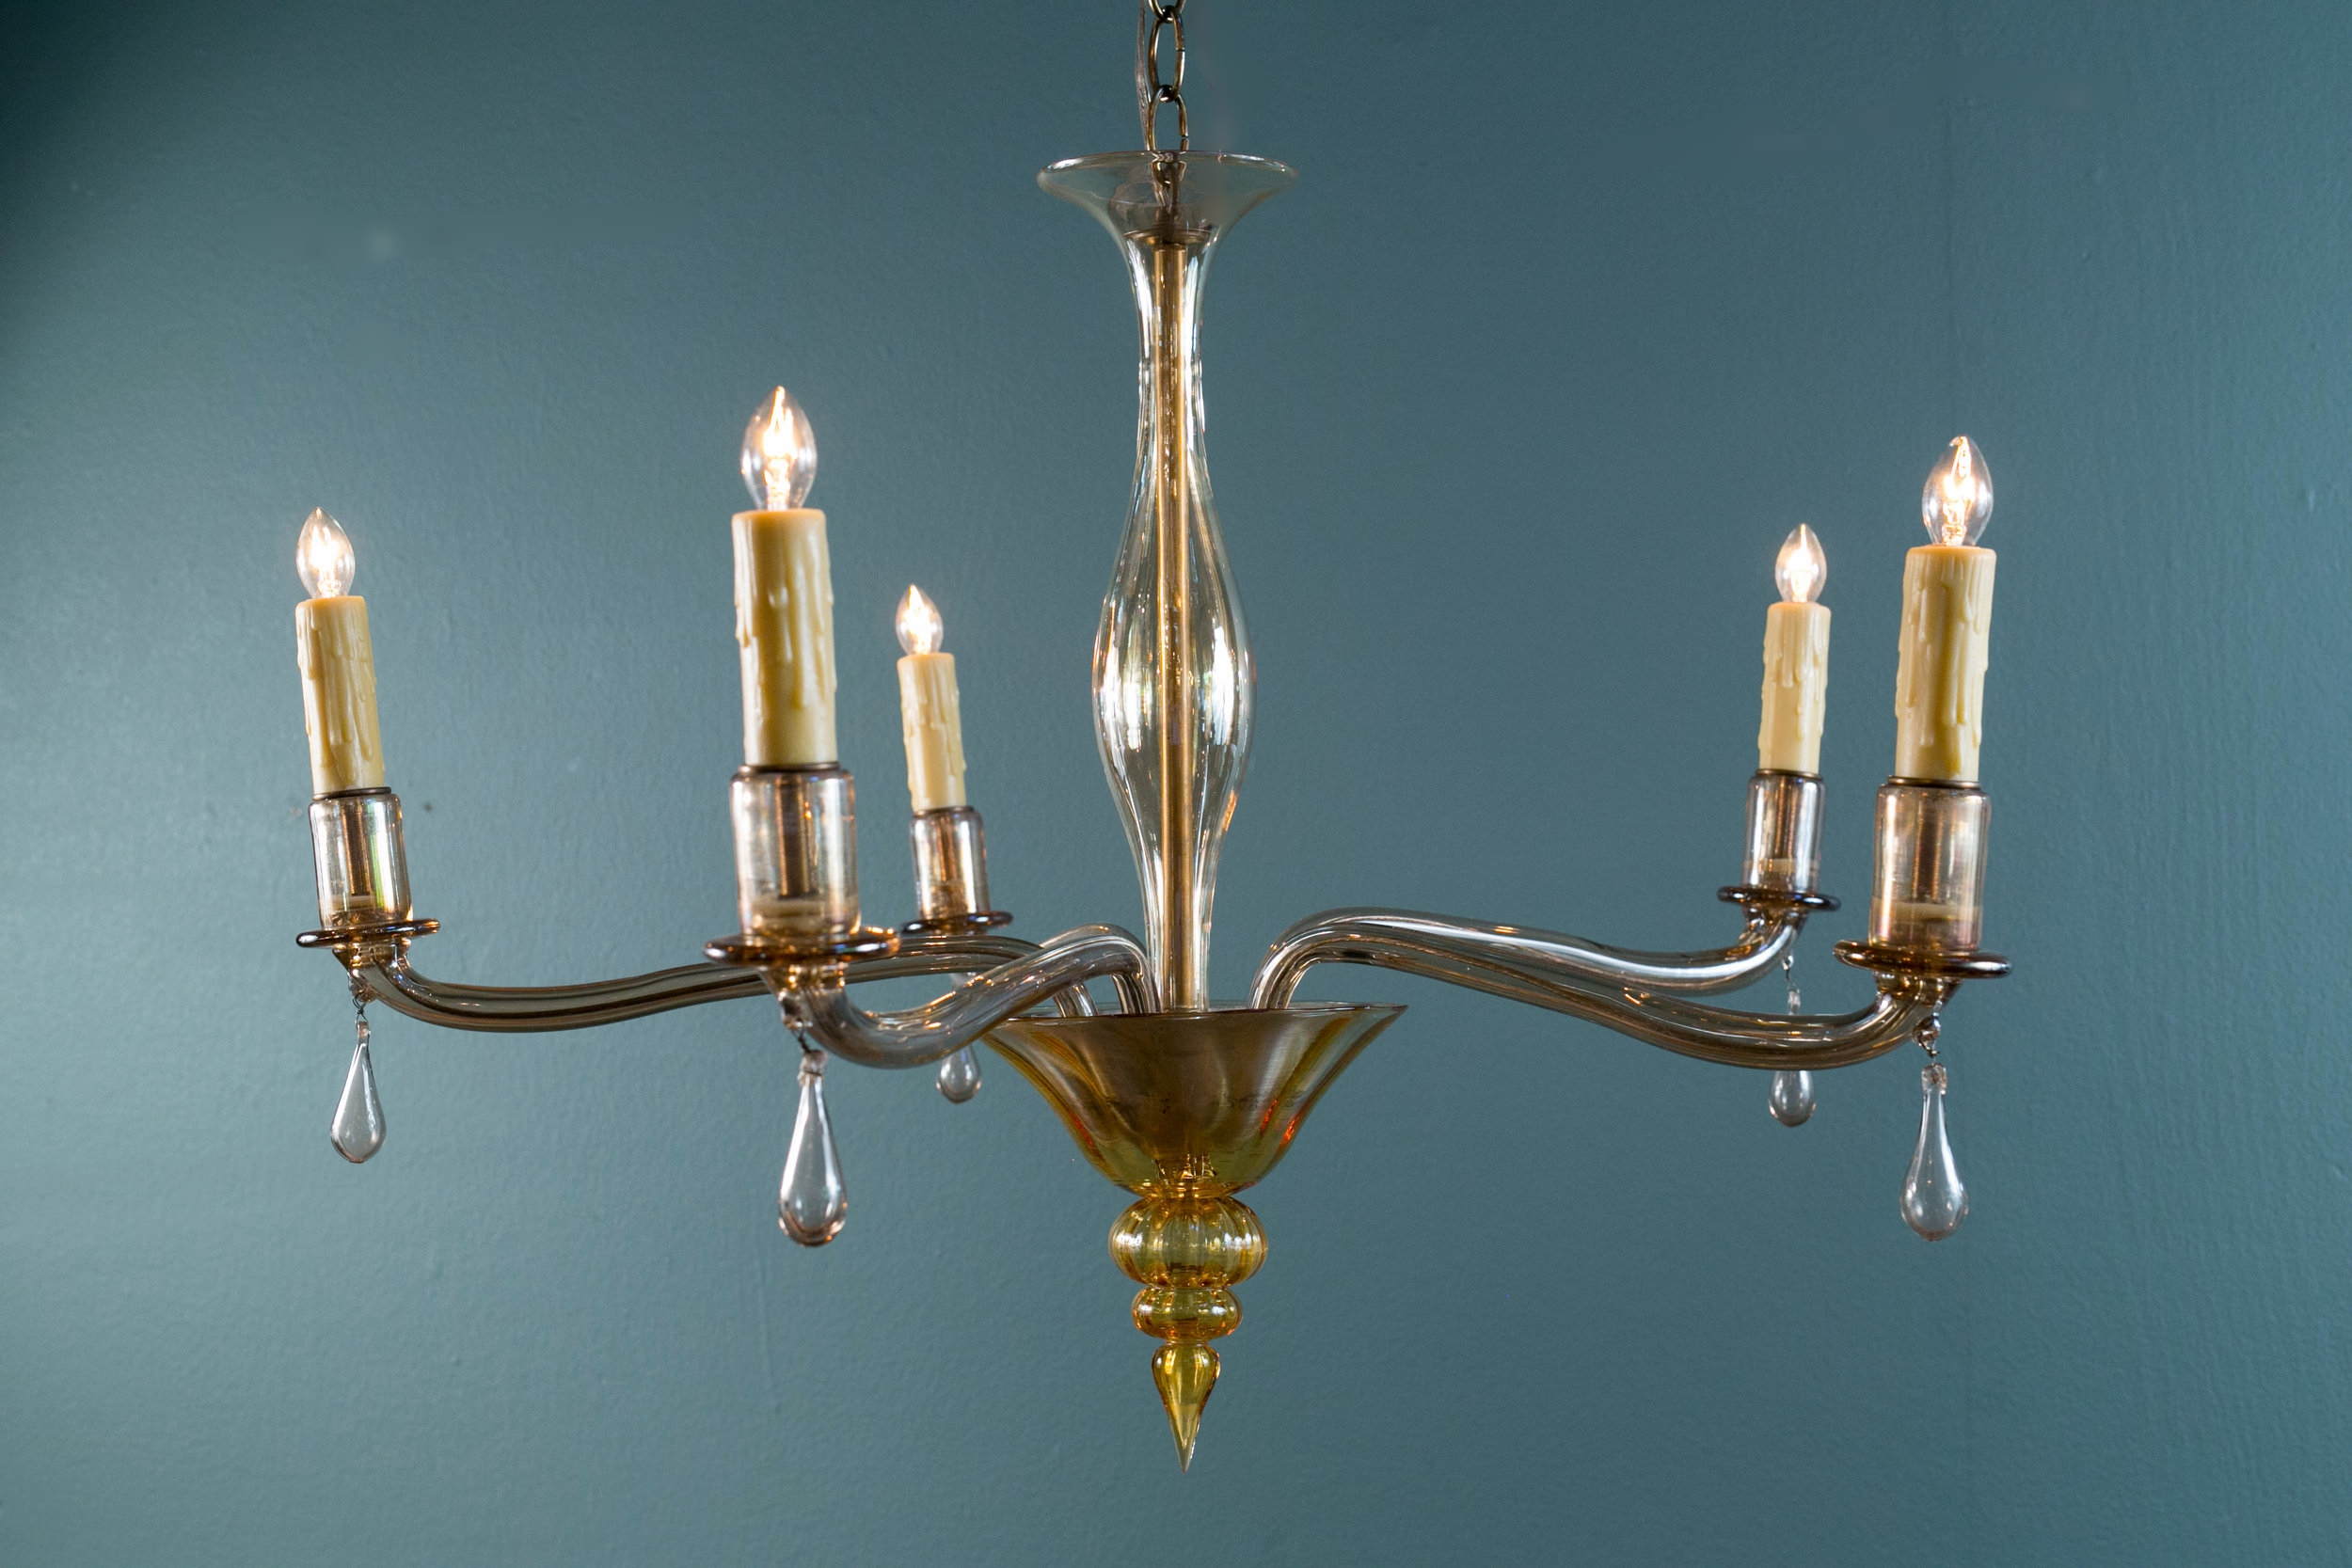 Five Arm Moderne Murano Chandelier with Drops